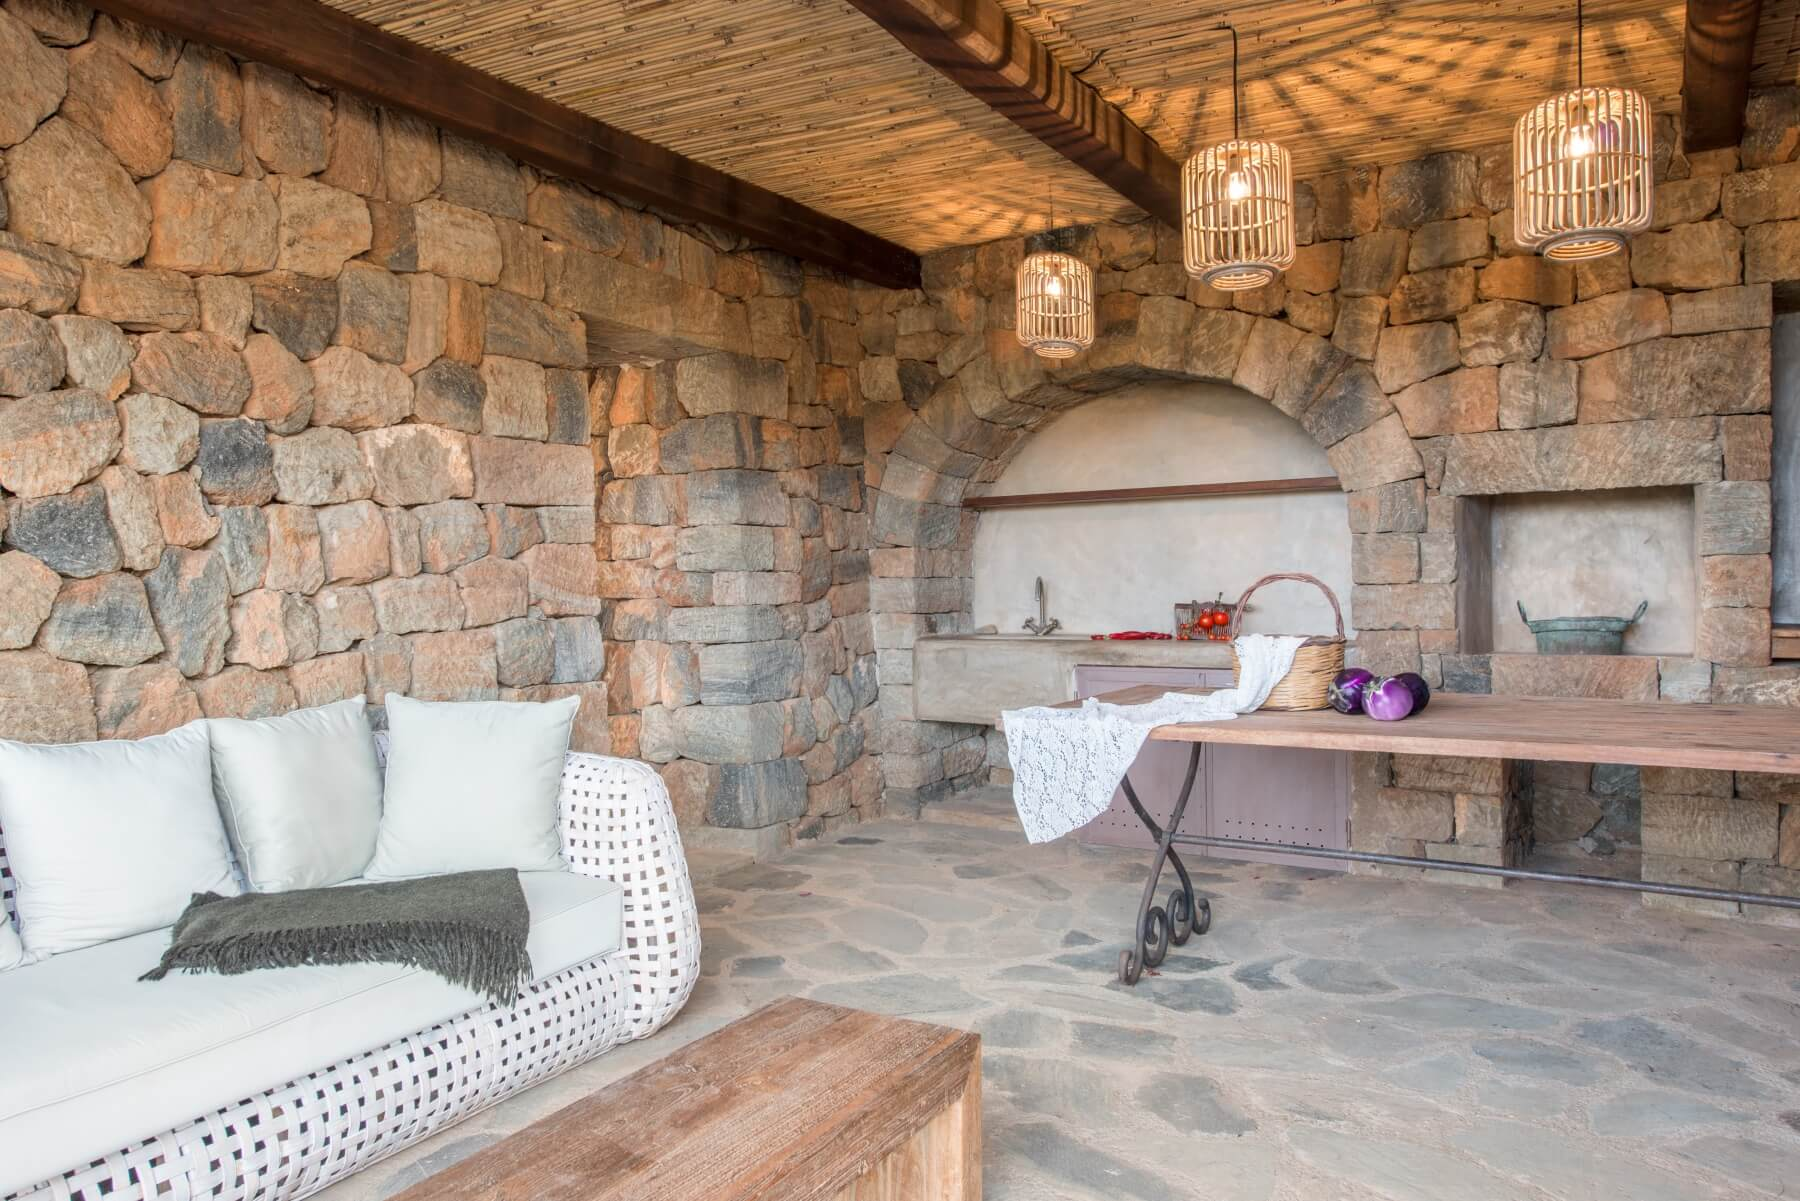 Corte Pantesca I - Paola Gheis Vacation Rental Consulting